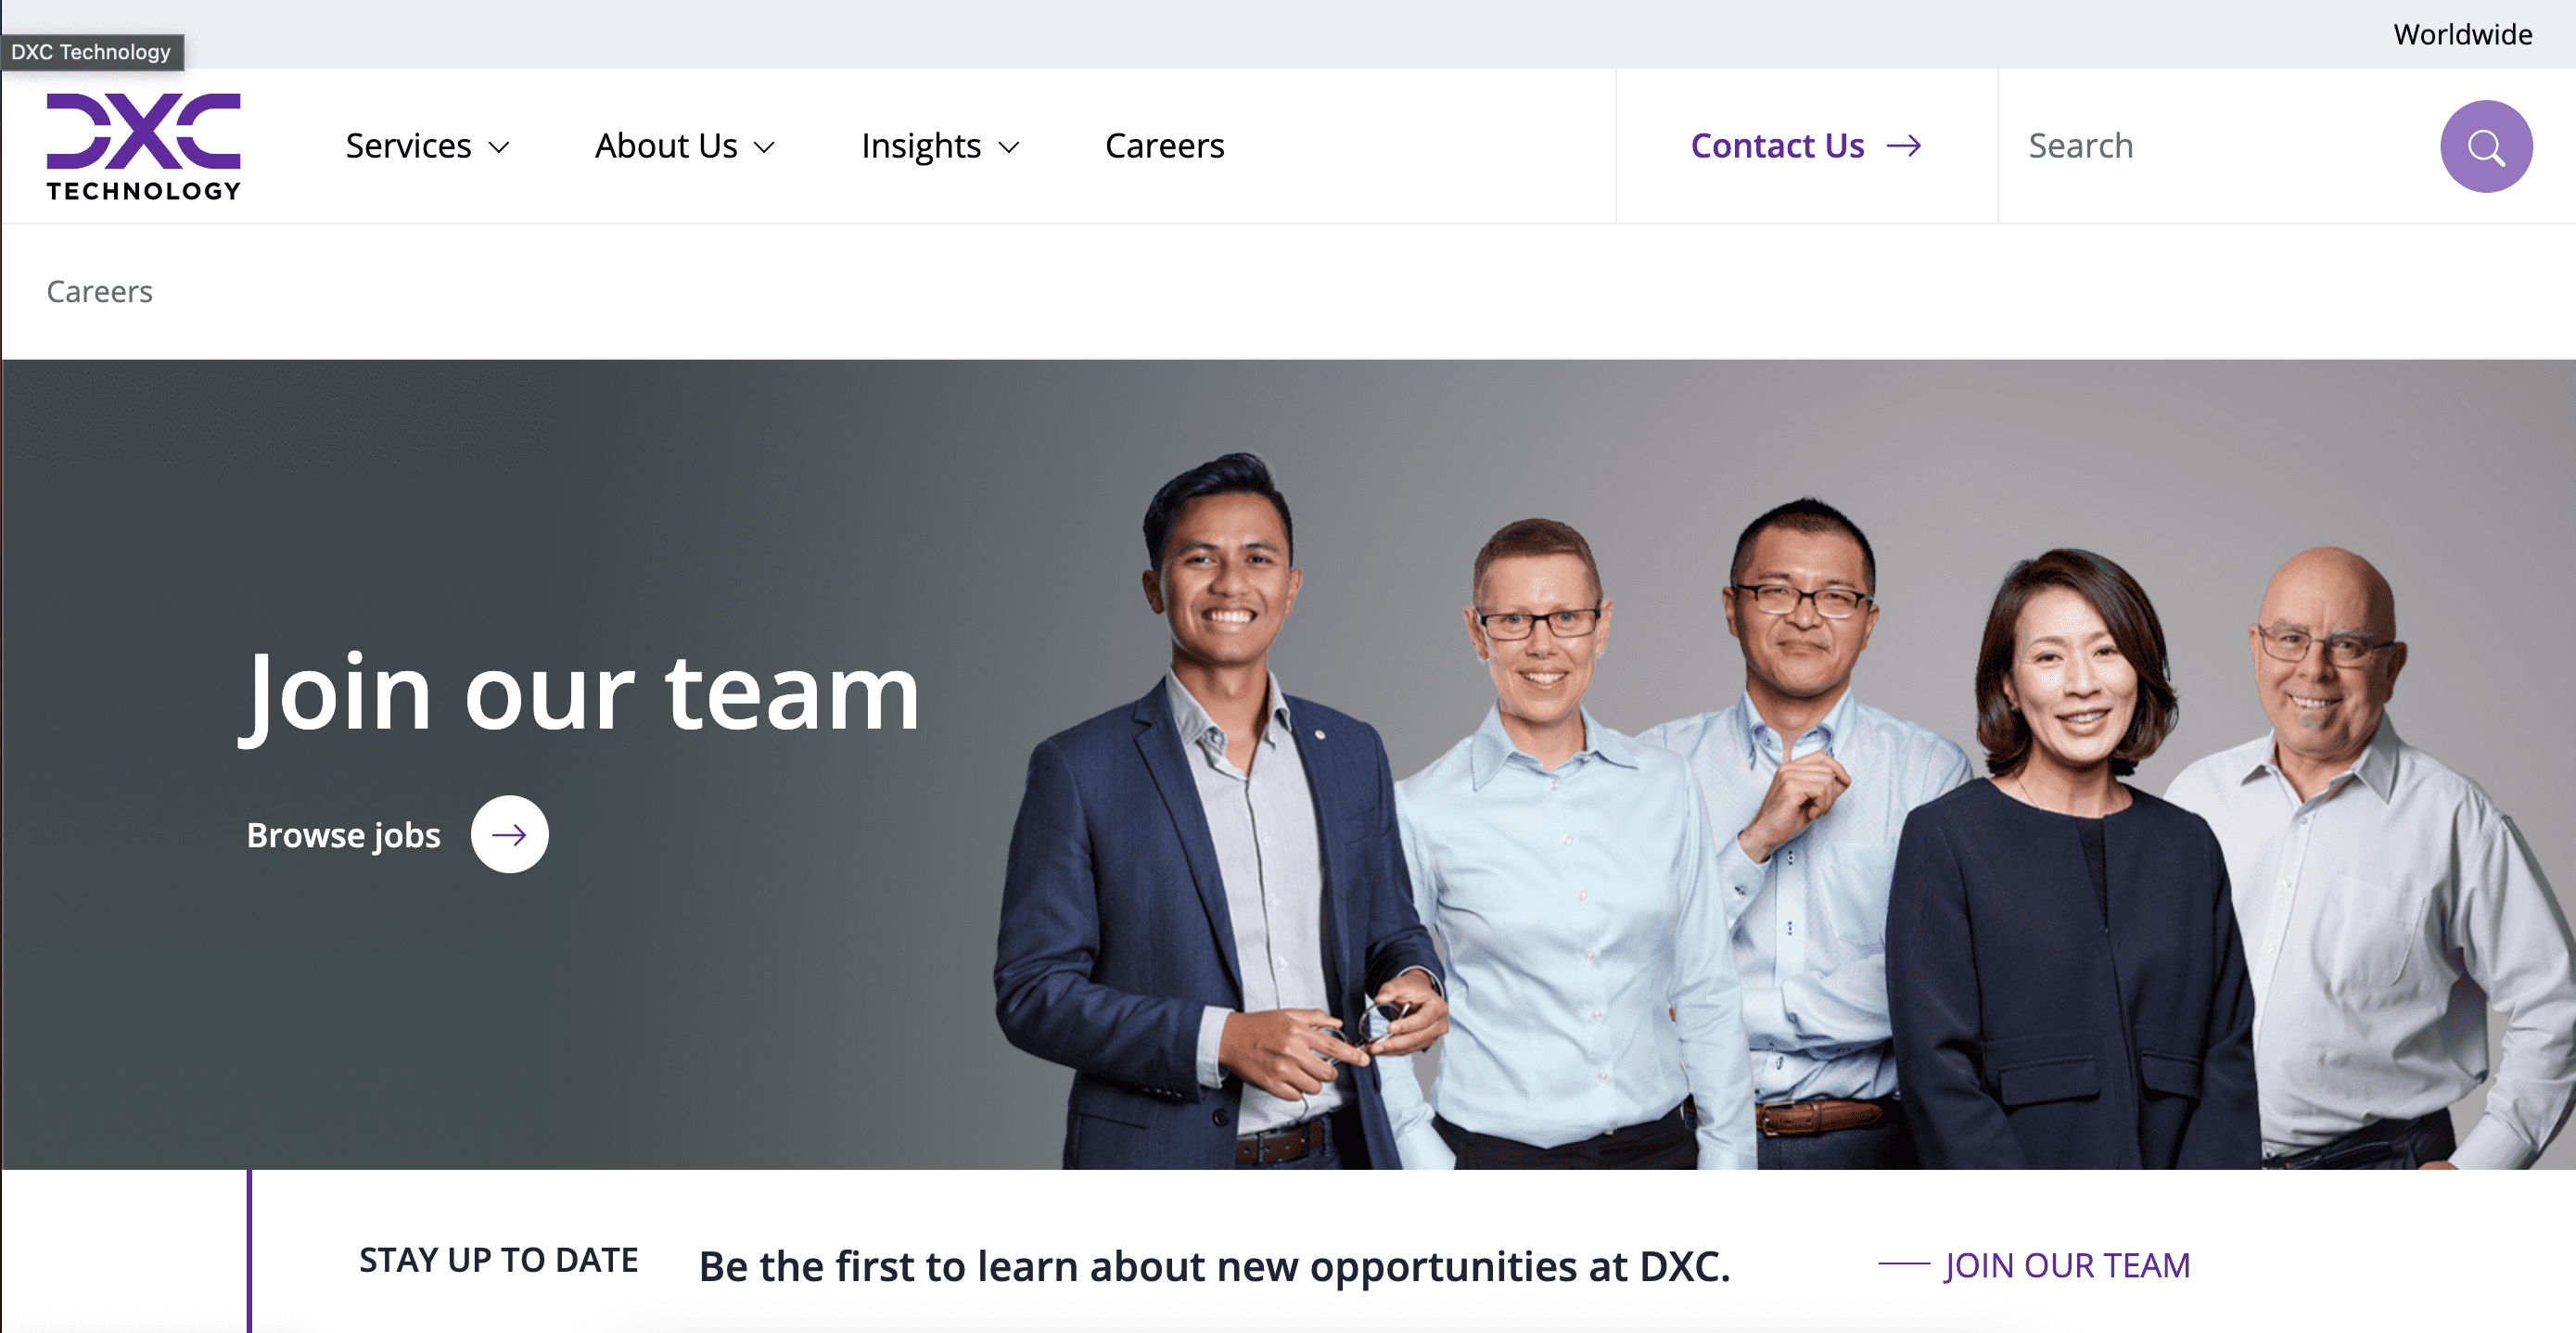 DXC Technology Careers landing page